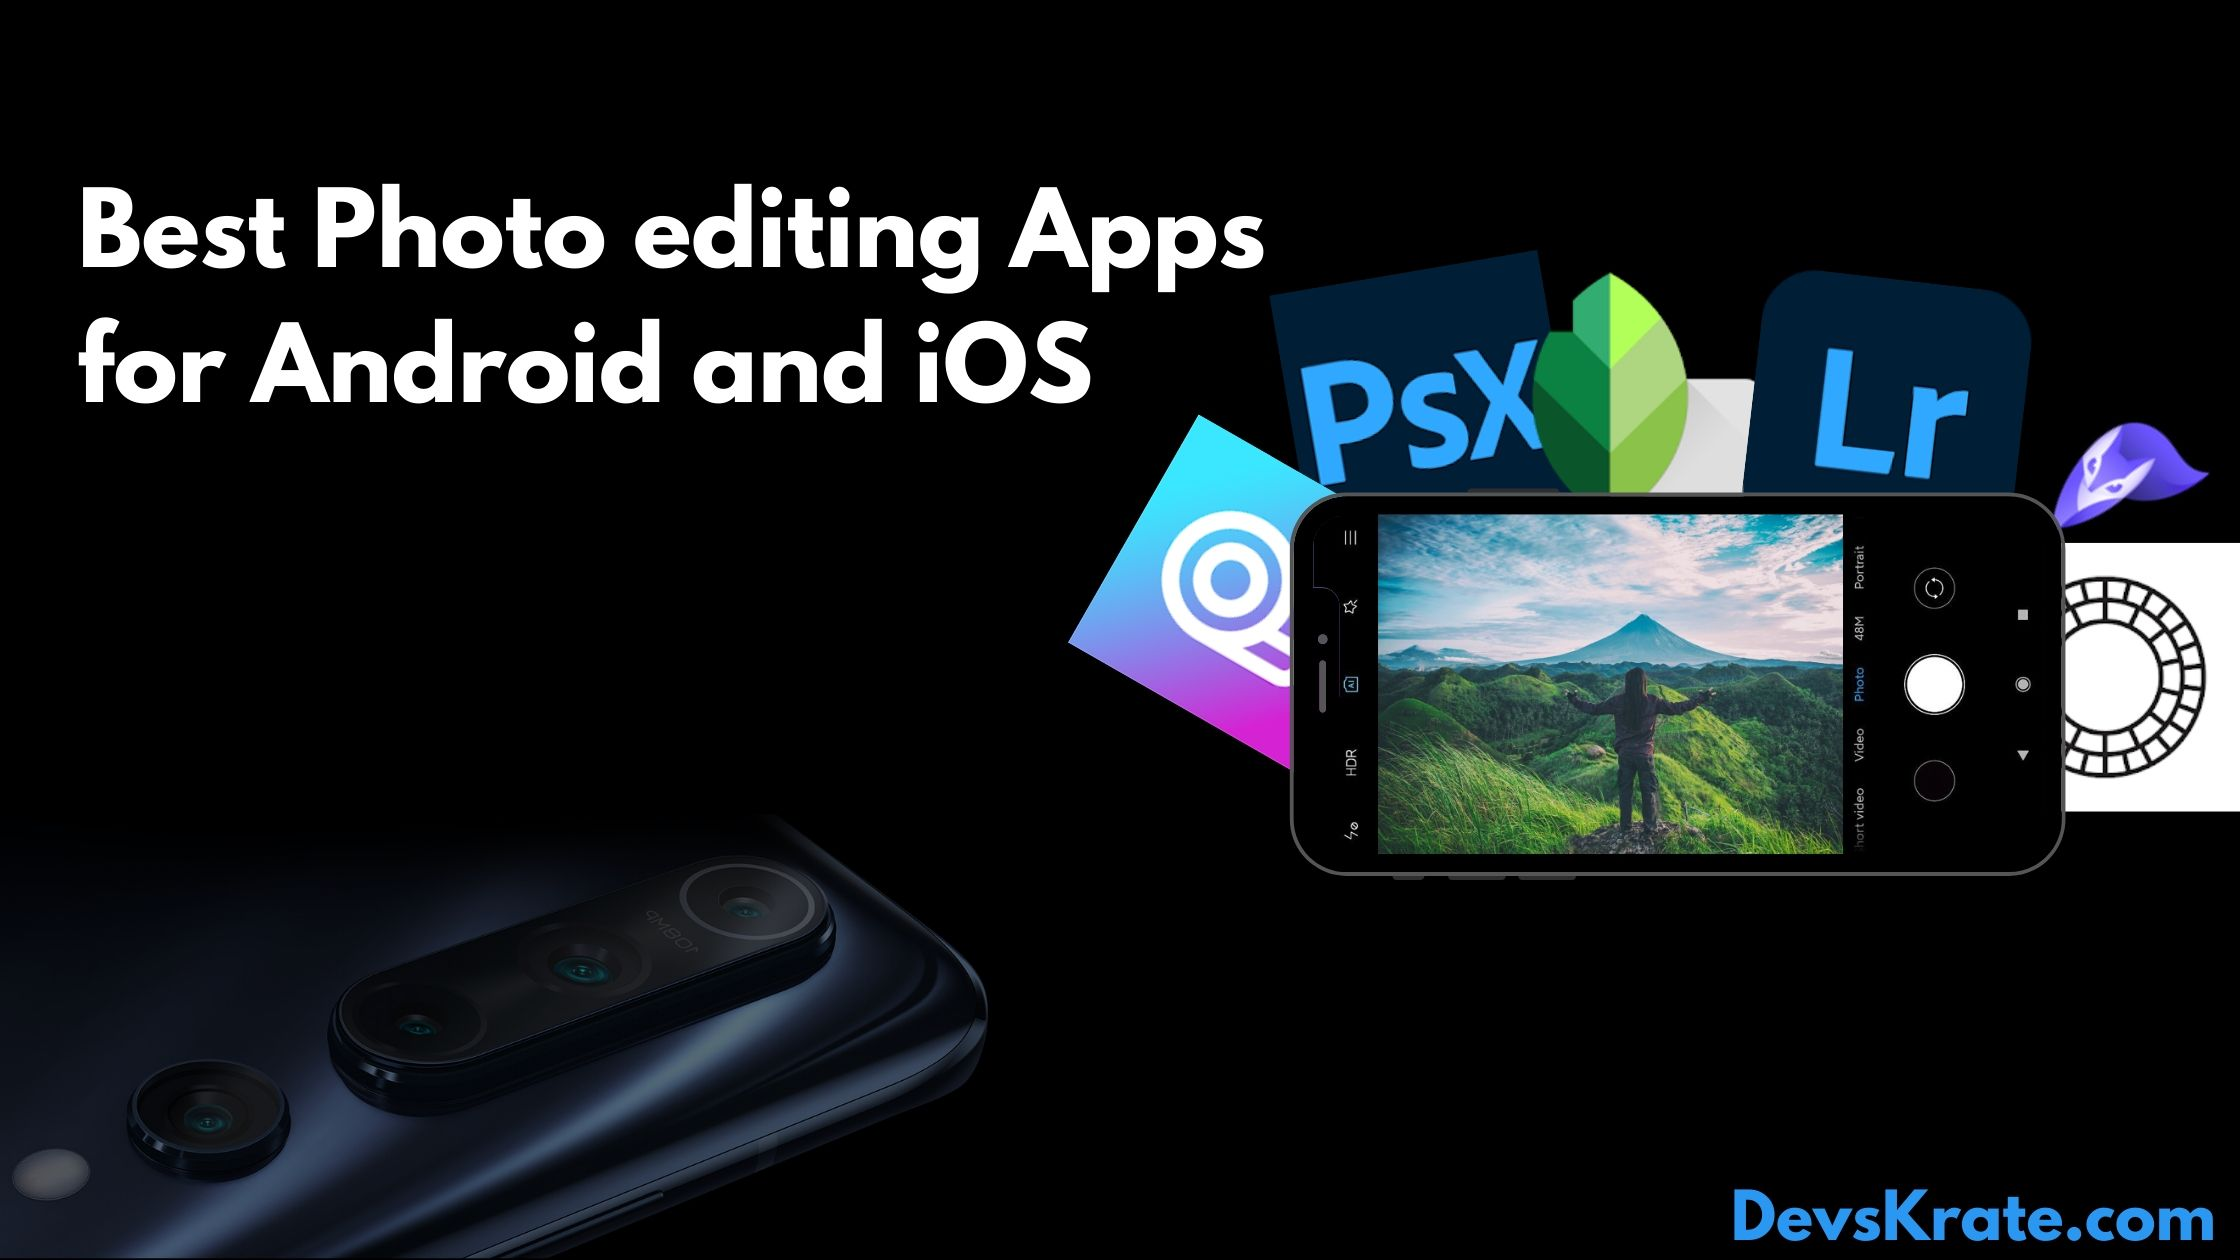 6 photo-editing apps for mobile photographers